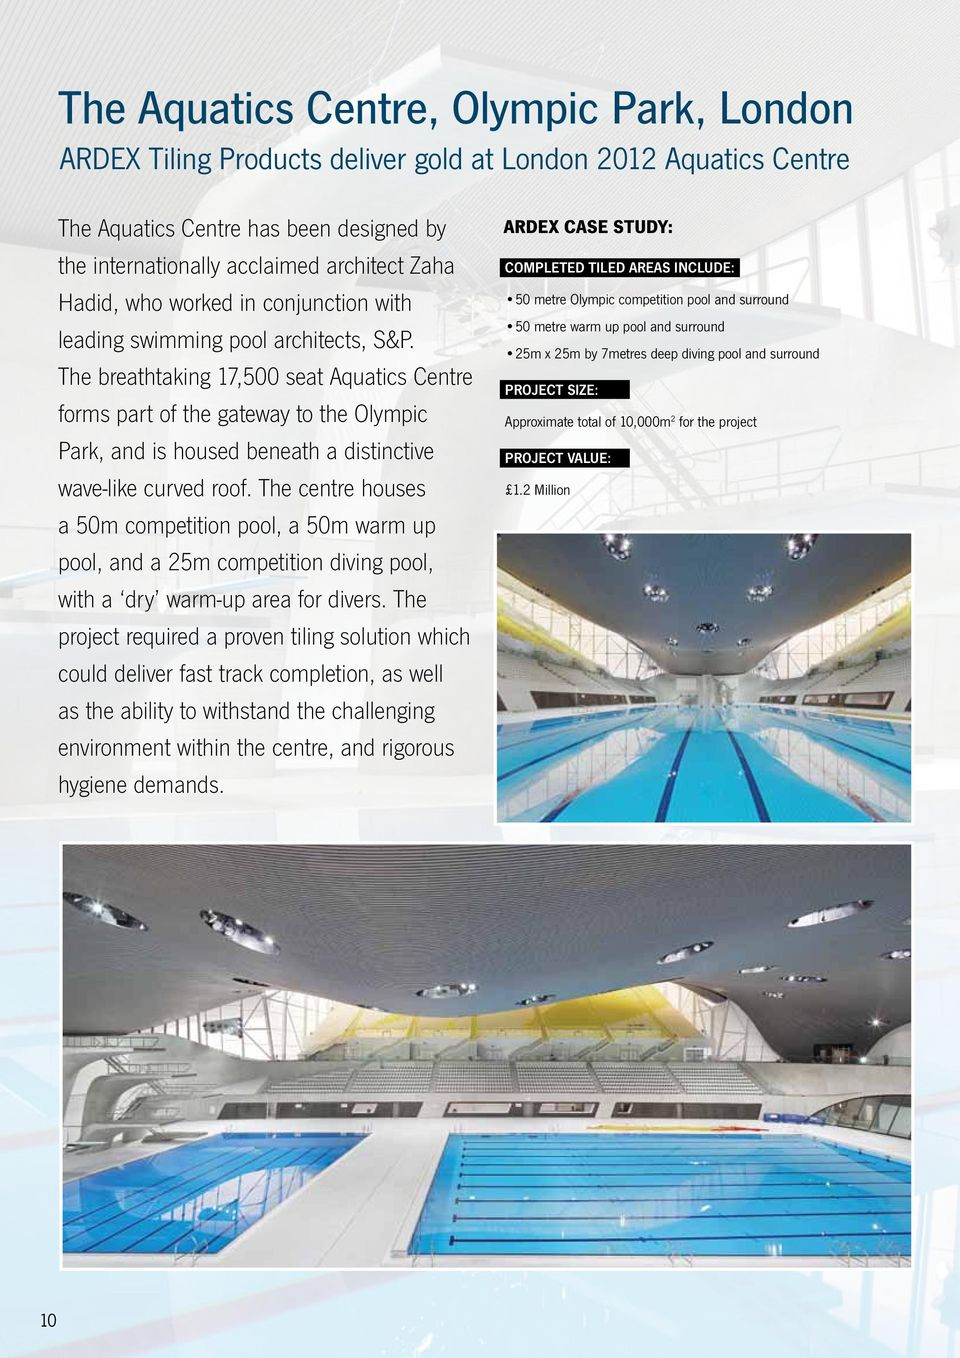 The breathtaking 17,500 seat Aquatics Centre forms part of the gateway to the Olympic Park, and is housed beneath a distinctive wave-like curved roof.